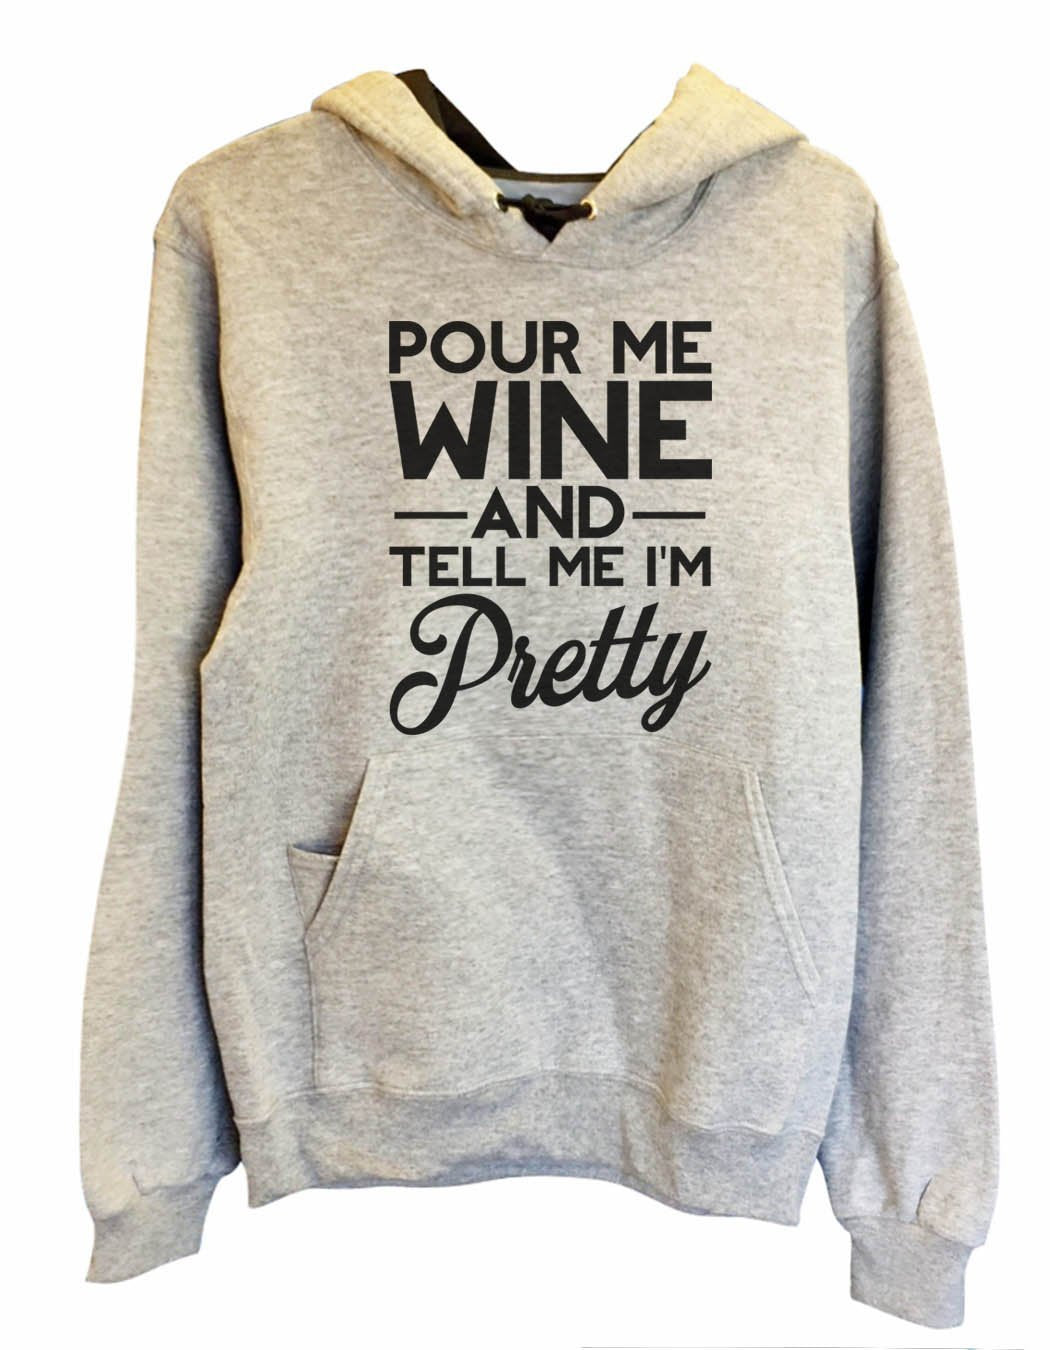 UNISEX HOODIE - Pour Me Wine And Tell Me I'm Pretty - FUNNY MENS AND WOMENS HOODED SWEATSHIRTS - 2162 Funny Shirt Small / Heather Grey